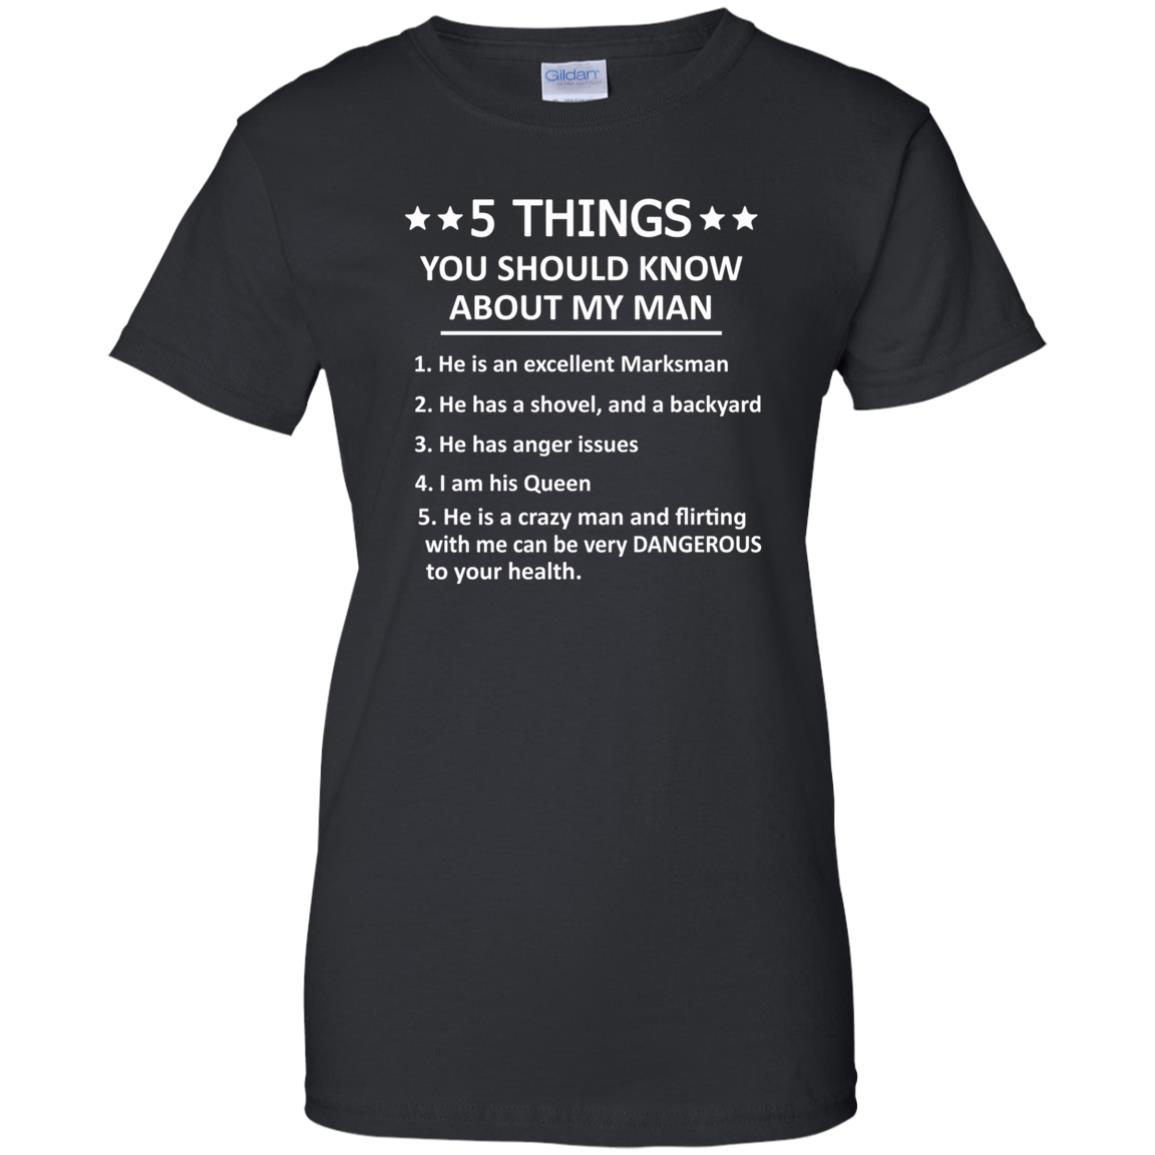 image 1326px 5 Things you should know about my man t shirt, hoodies, tank top